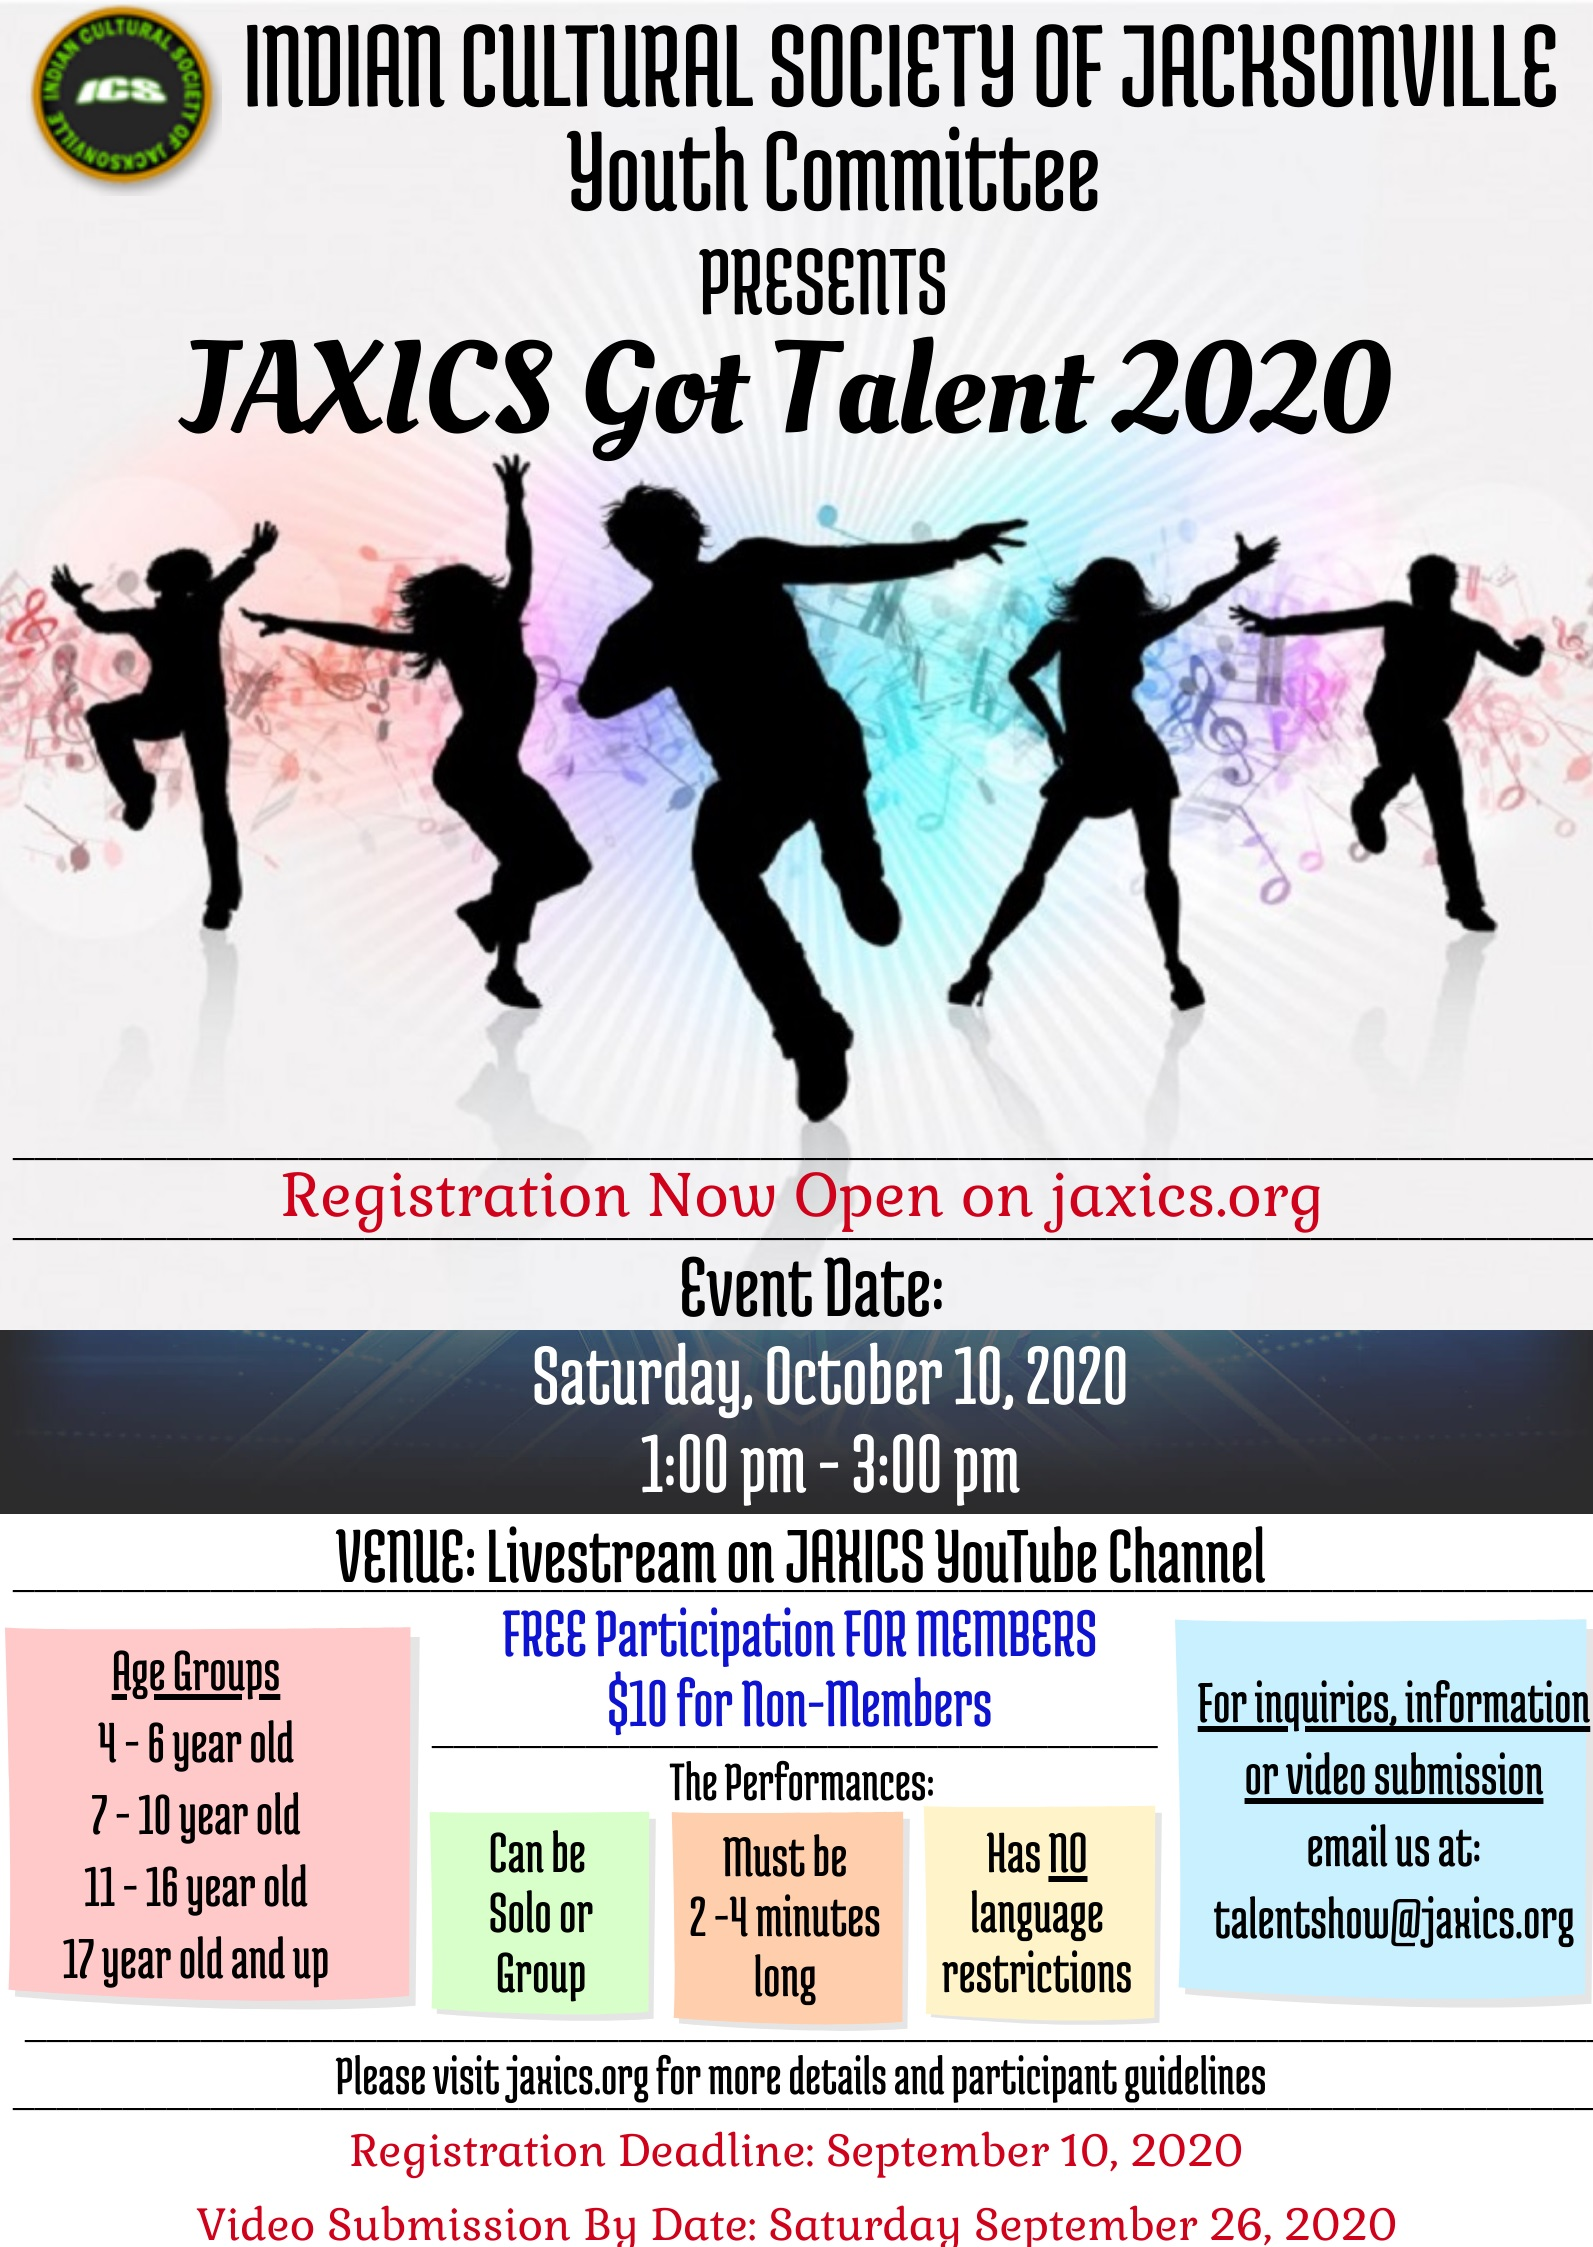 JAXICS Got Talent 2020